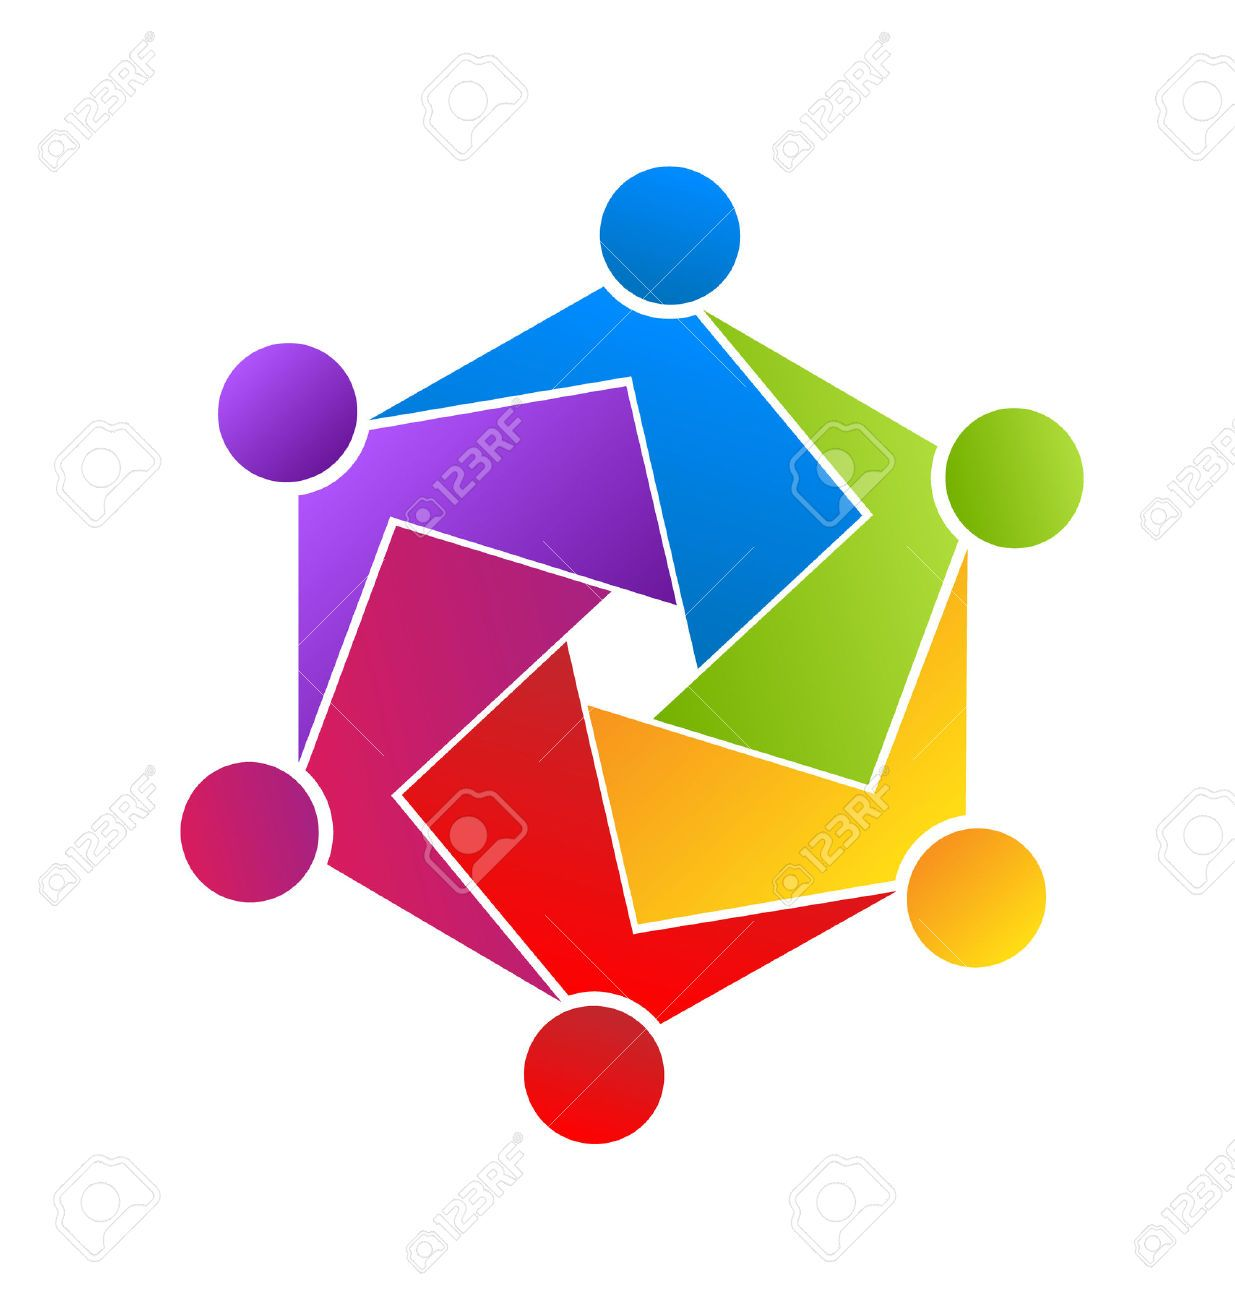 Teamwork Unity People Icon Royalty Free Cliparts, Vectors ...